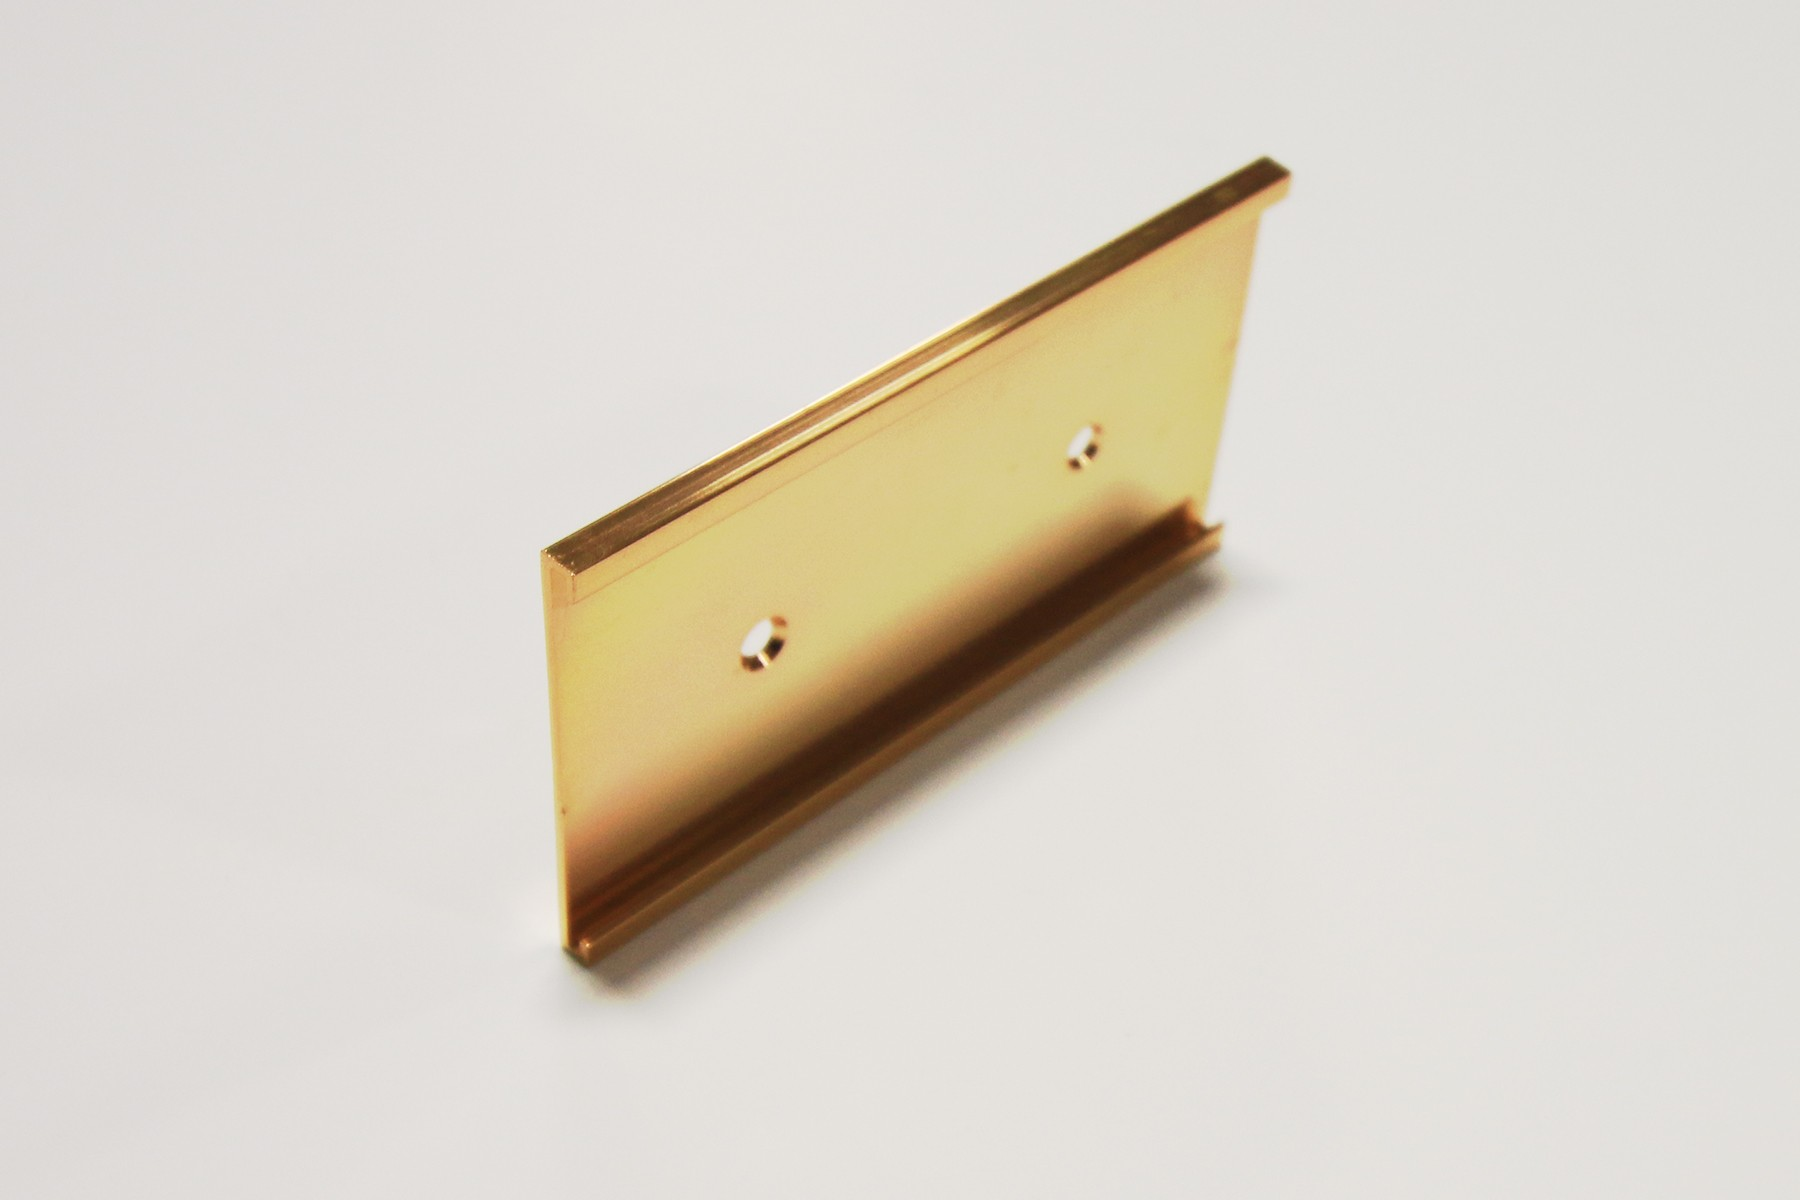 2 x 6 Wall Holder, Gold -100-